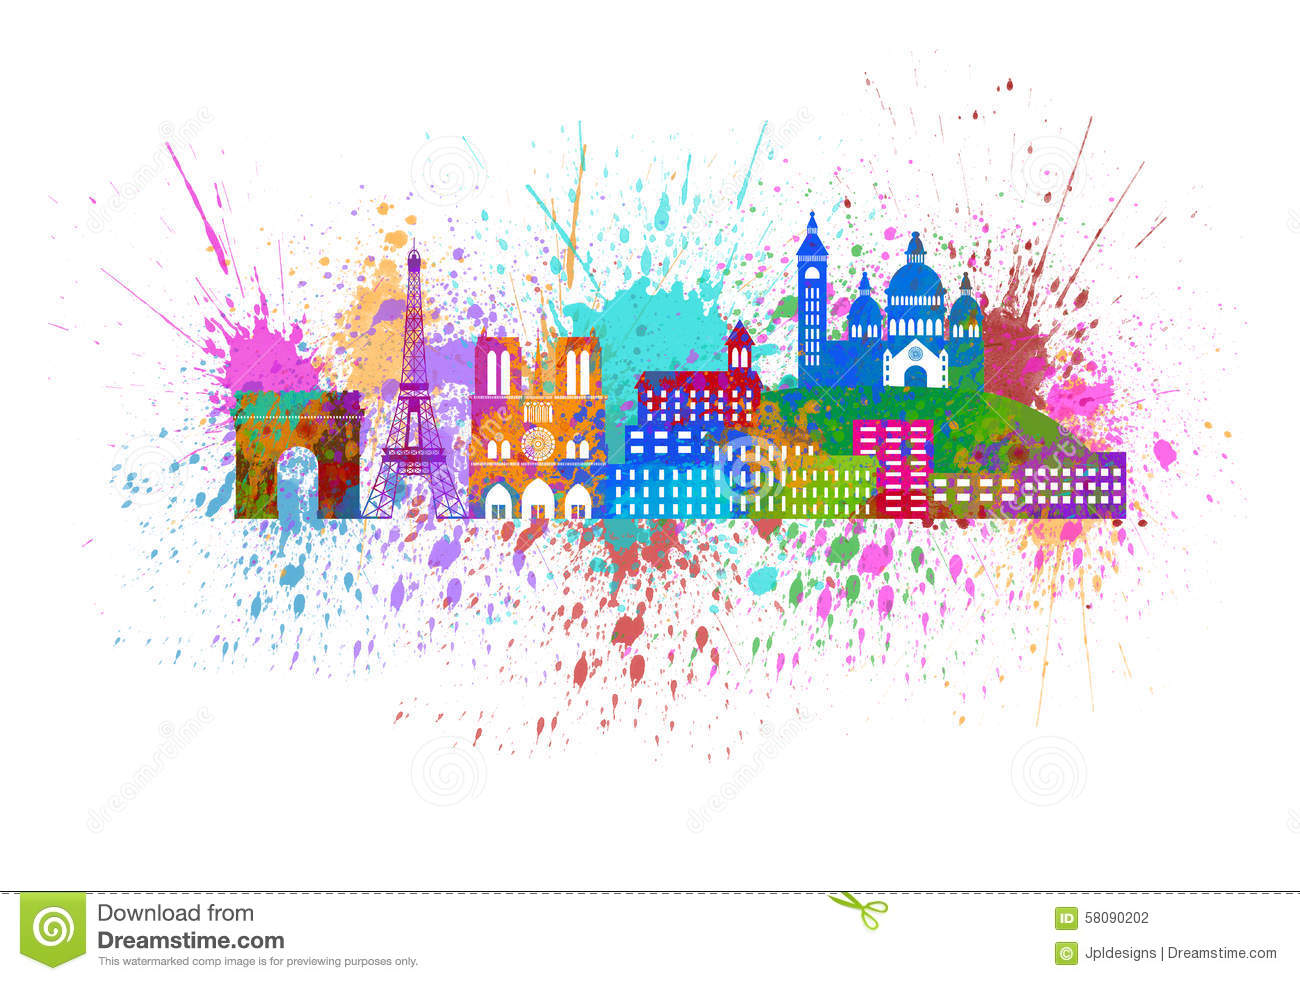 Watercolor splatter vector abstract watercolor background - Paris City Skyline Paint Splatter Color Illustration Stock